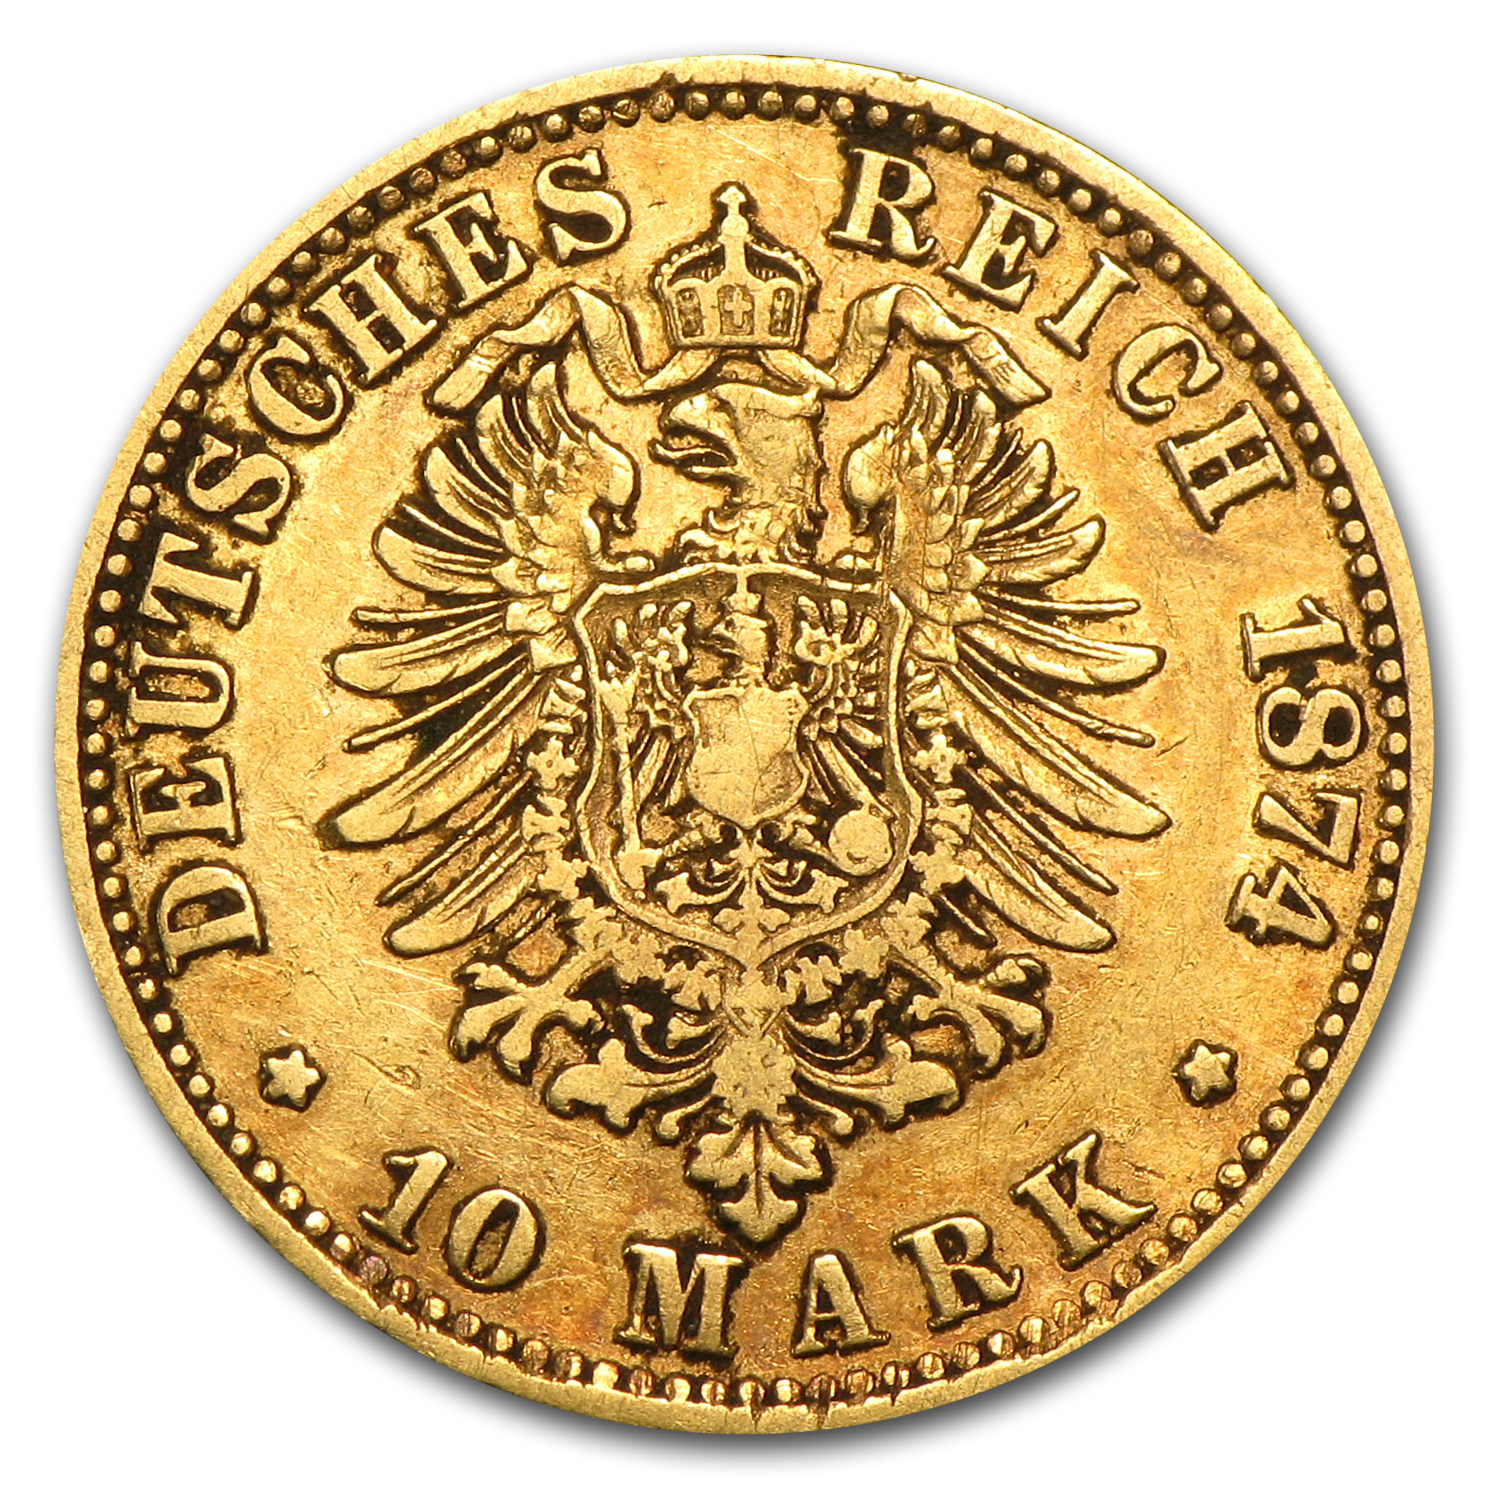 Germany Prussia 10 Mark Gold AGW .1152 (Avg Circ)